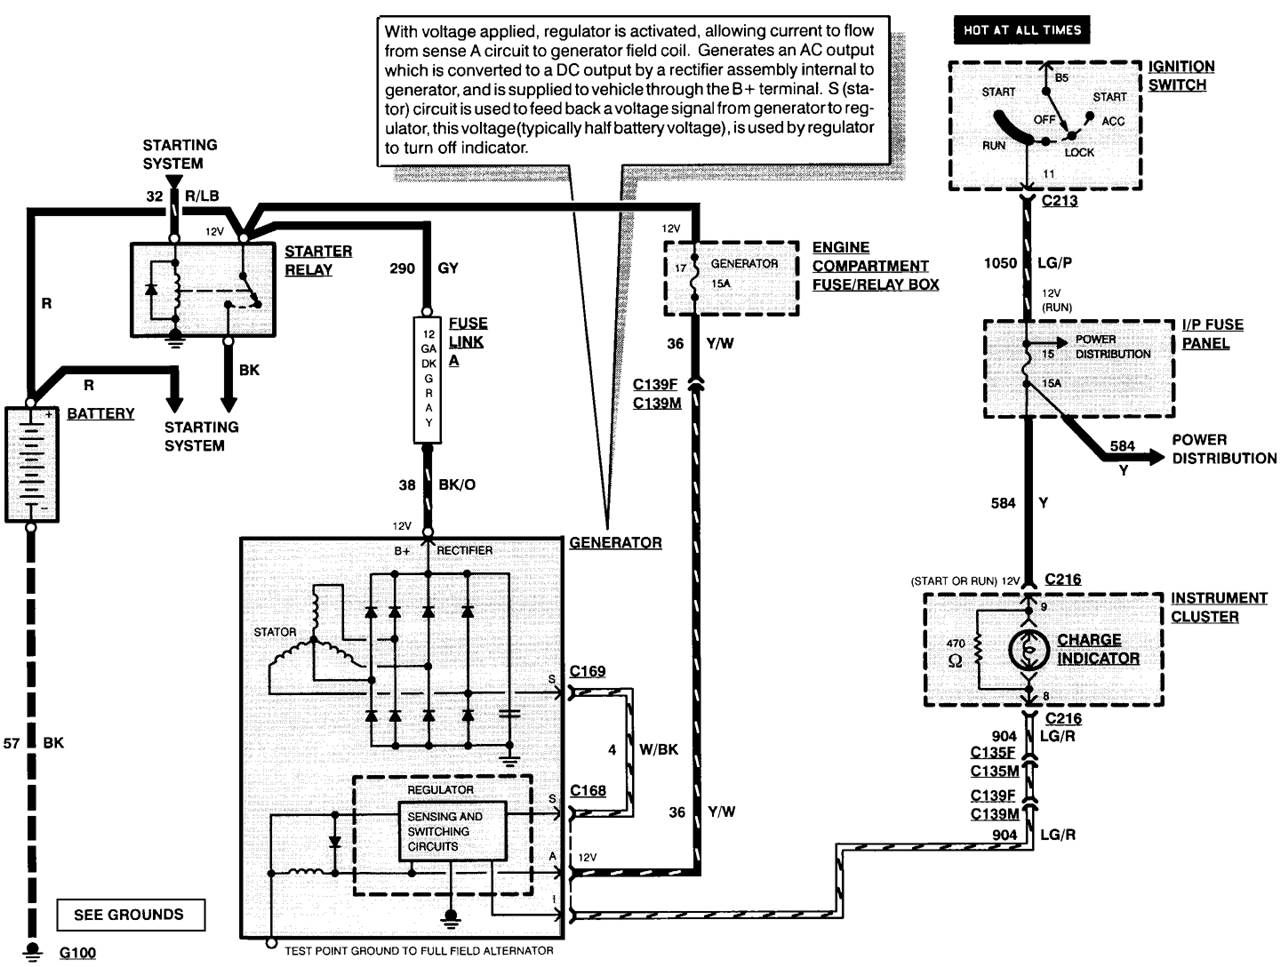 Ford alternator wiring diagram internal regulator ford alternator wiring diagrams carsut understand cars and 3 wire voltage regulator wiring diagram at cos-gaming.co